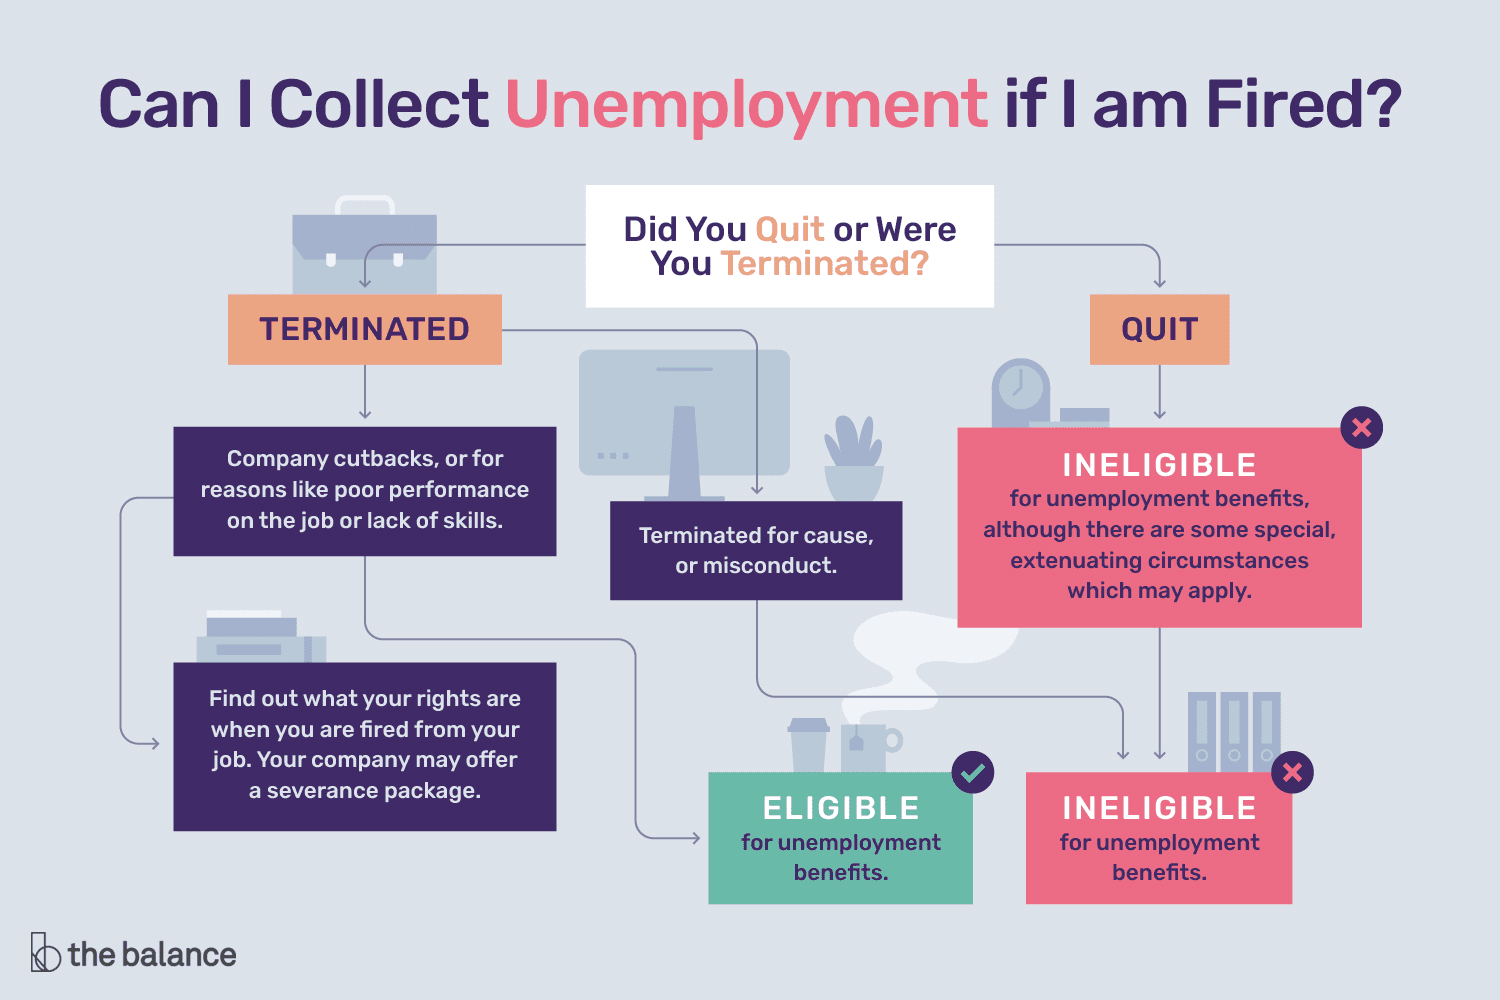 If you were fired from a job you may be eligible for